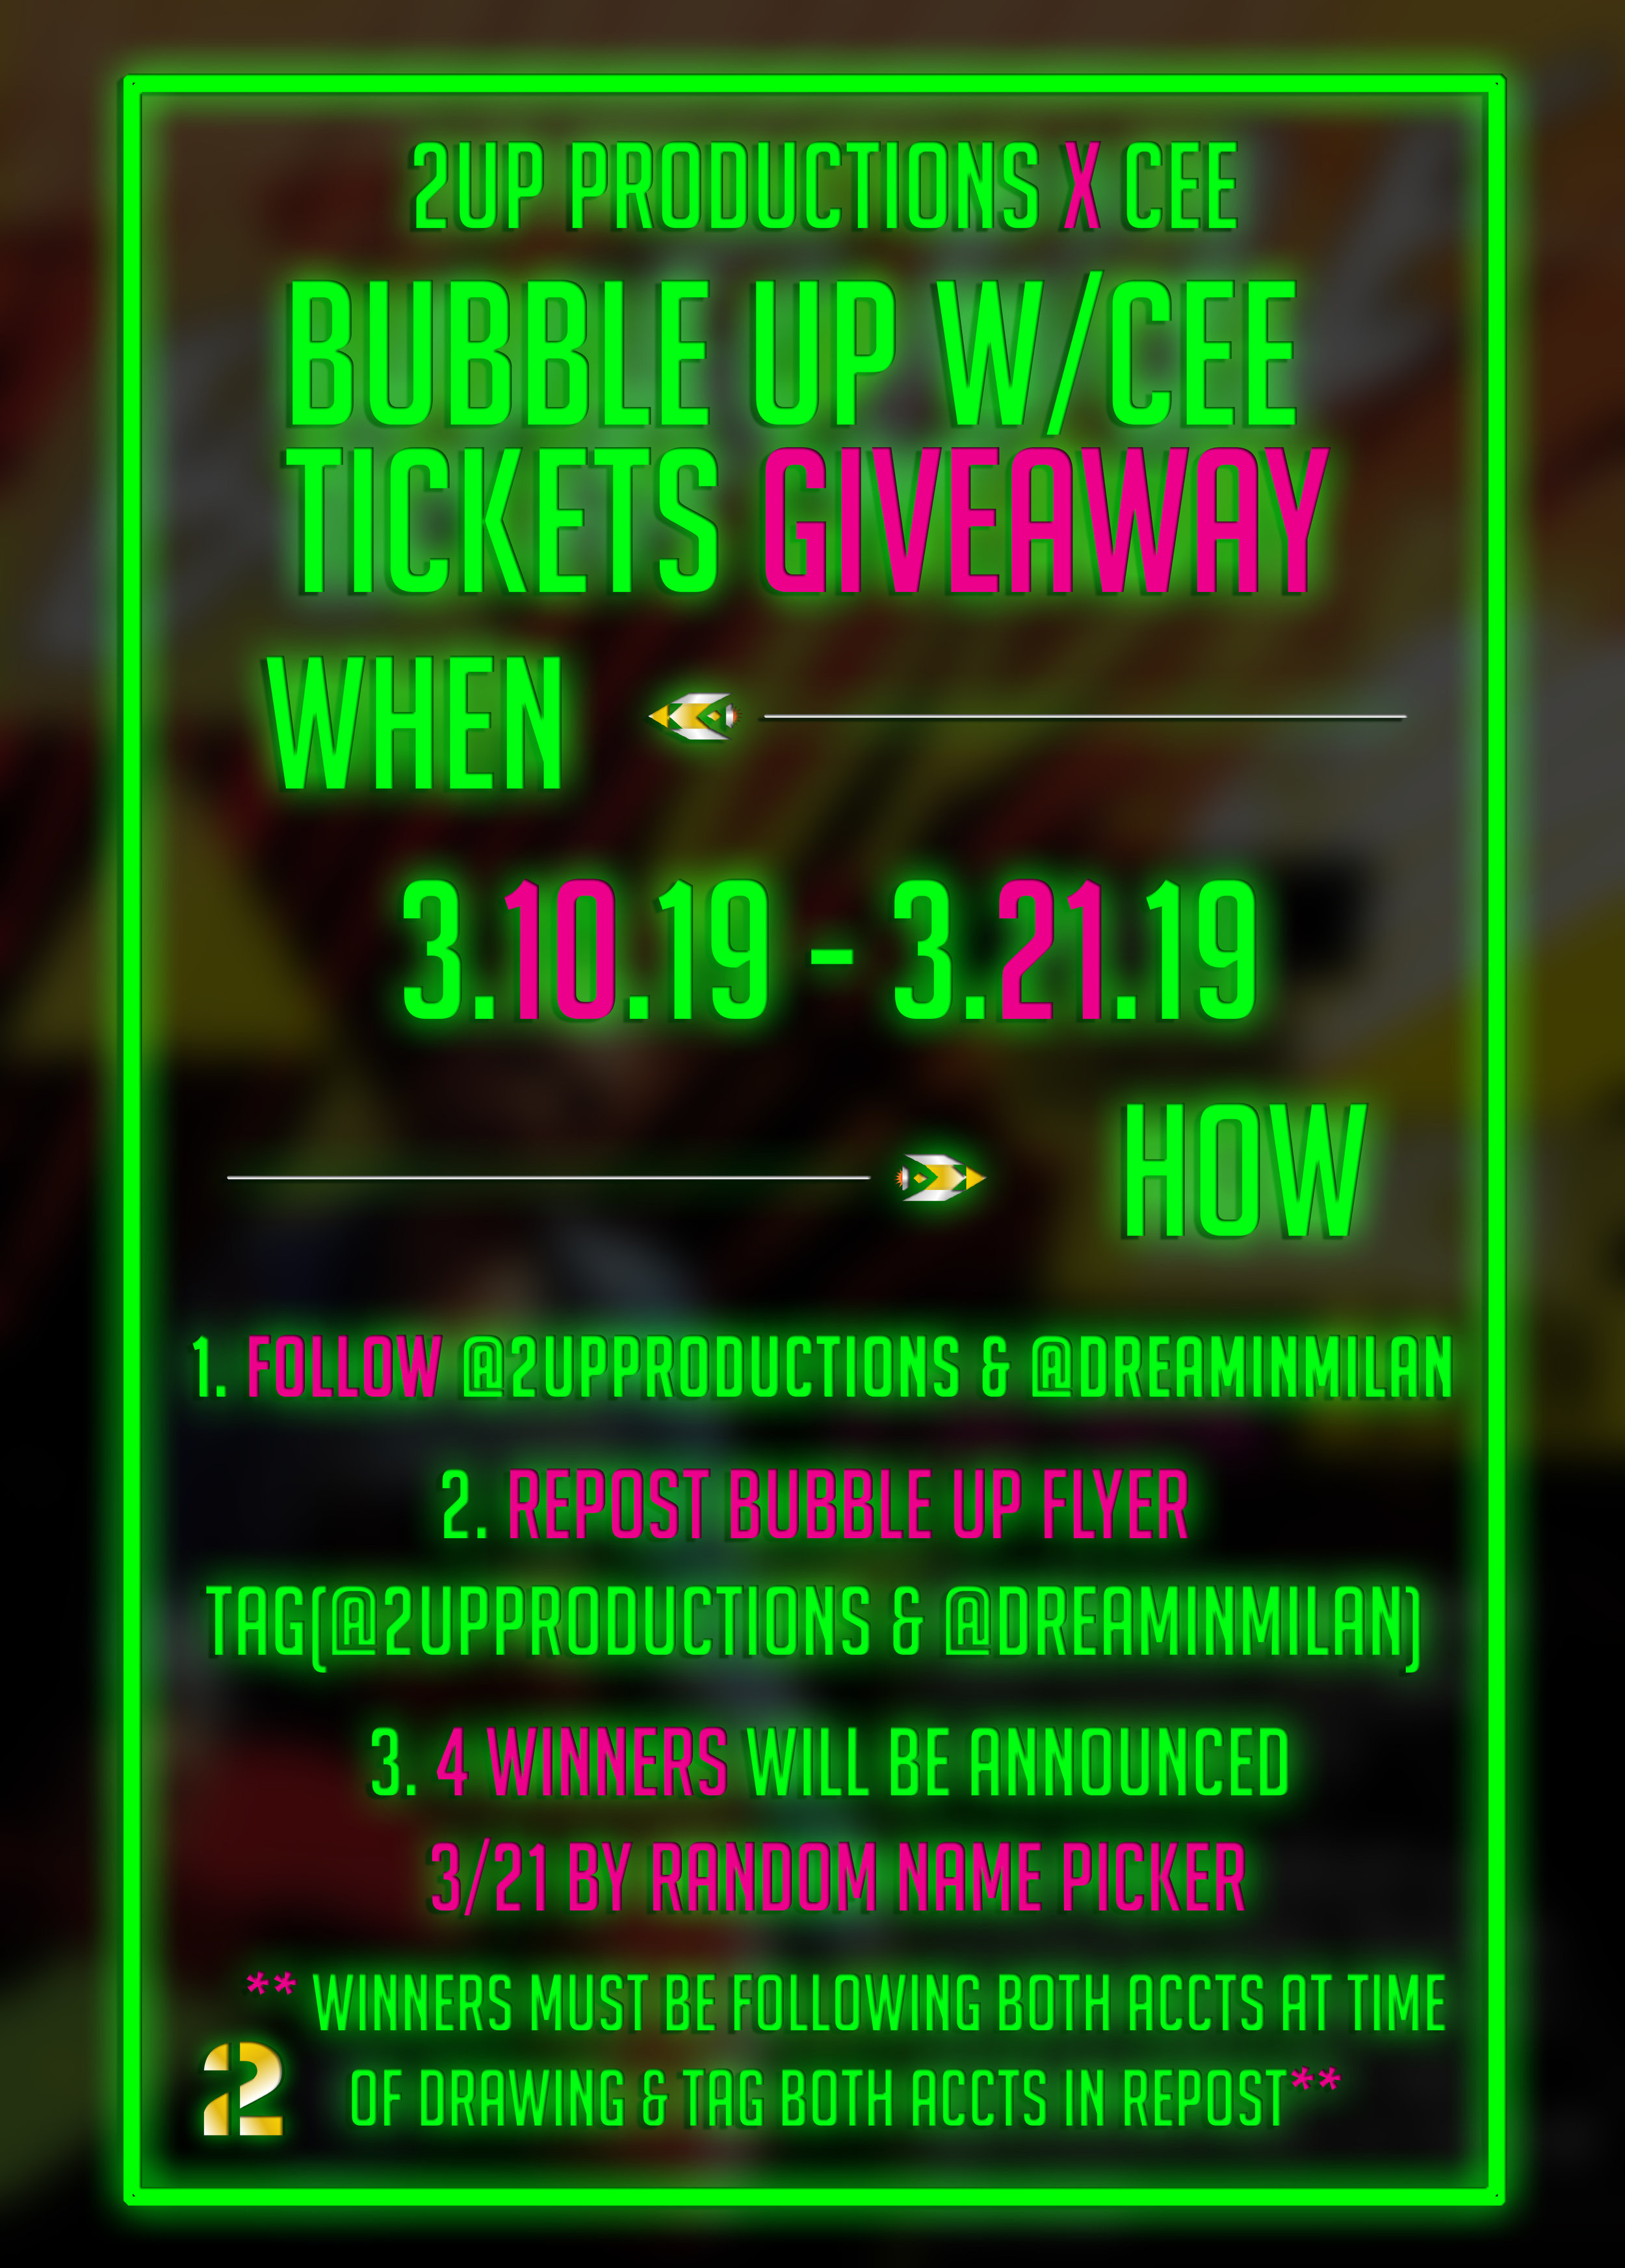 BUBBLE UP WITH CEE TICKETS GIVEAWAY - 2UP PRODUCTIONS X CEE